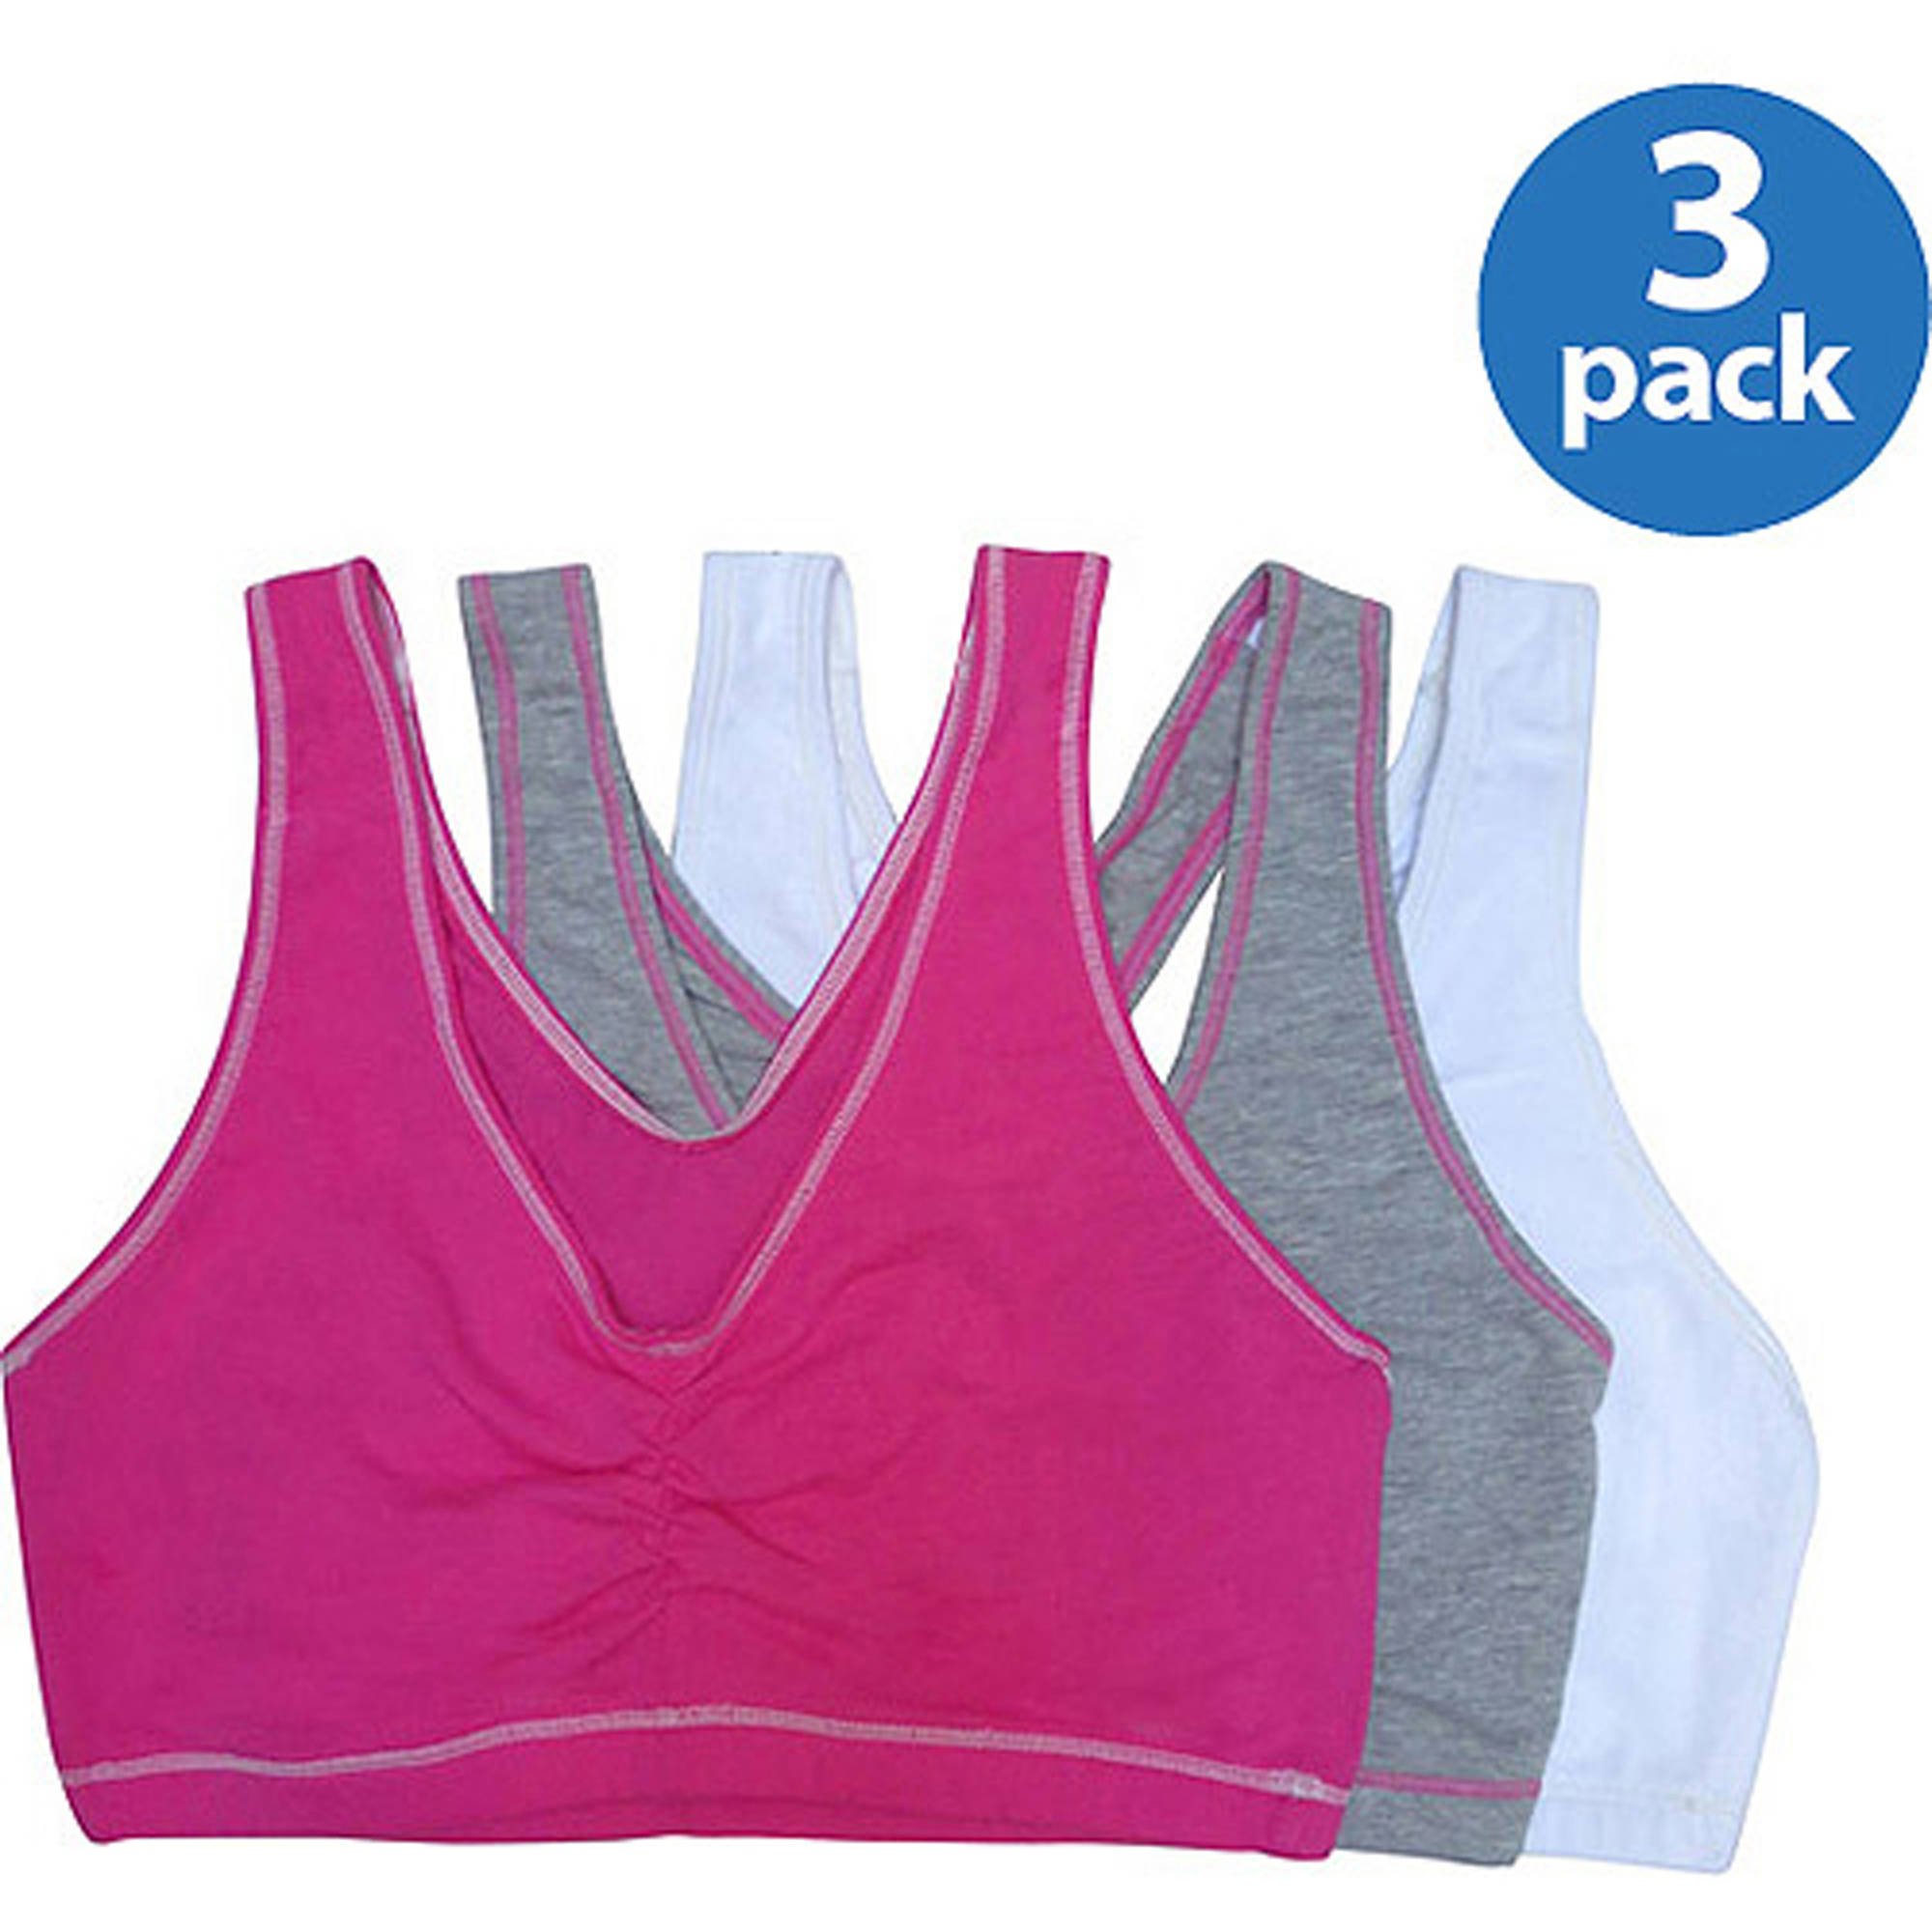 Fruit of the Loom Women's Shirred Front Tank Racerback Sports Bra, Style FT170, 3-Pack